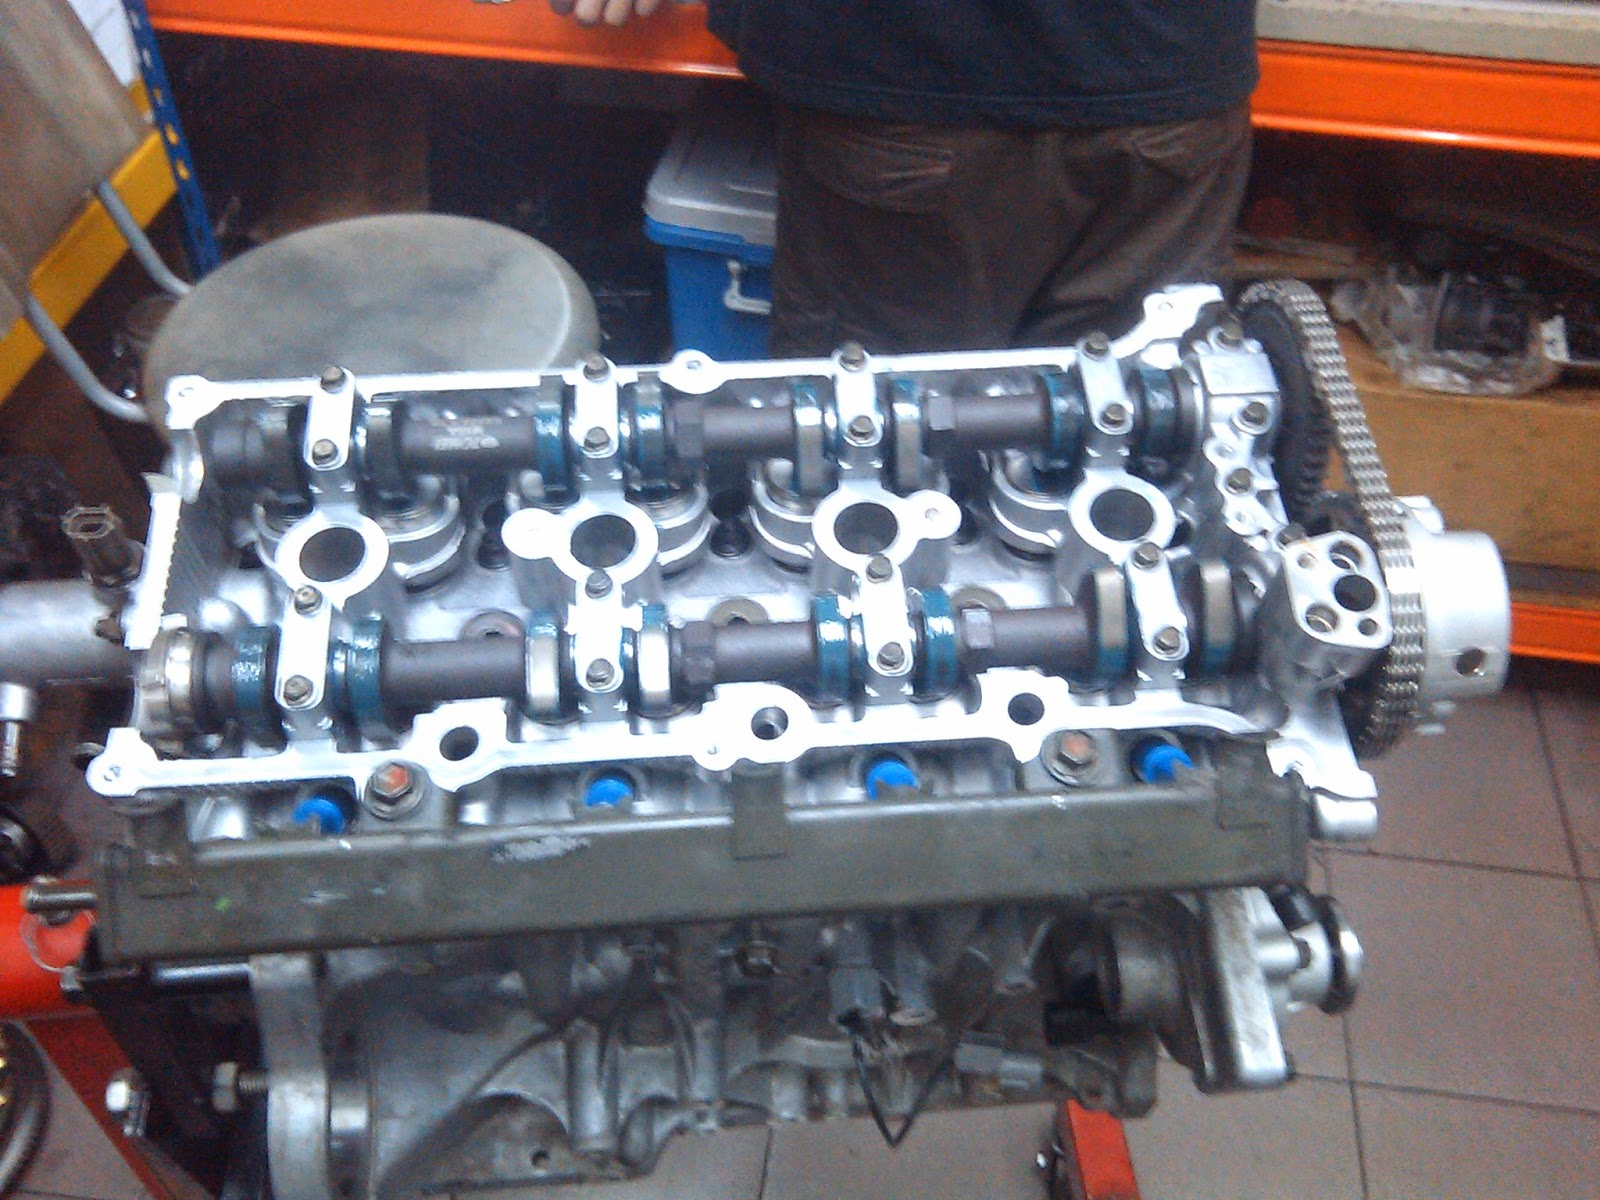 Next after a few days, the mechanic successfully install the cam, pistons,  cylinder head, timing chain!, valve etc.